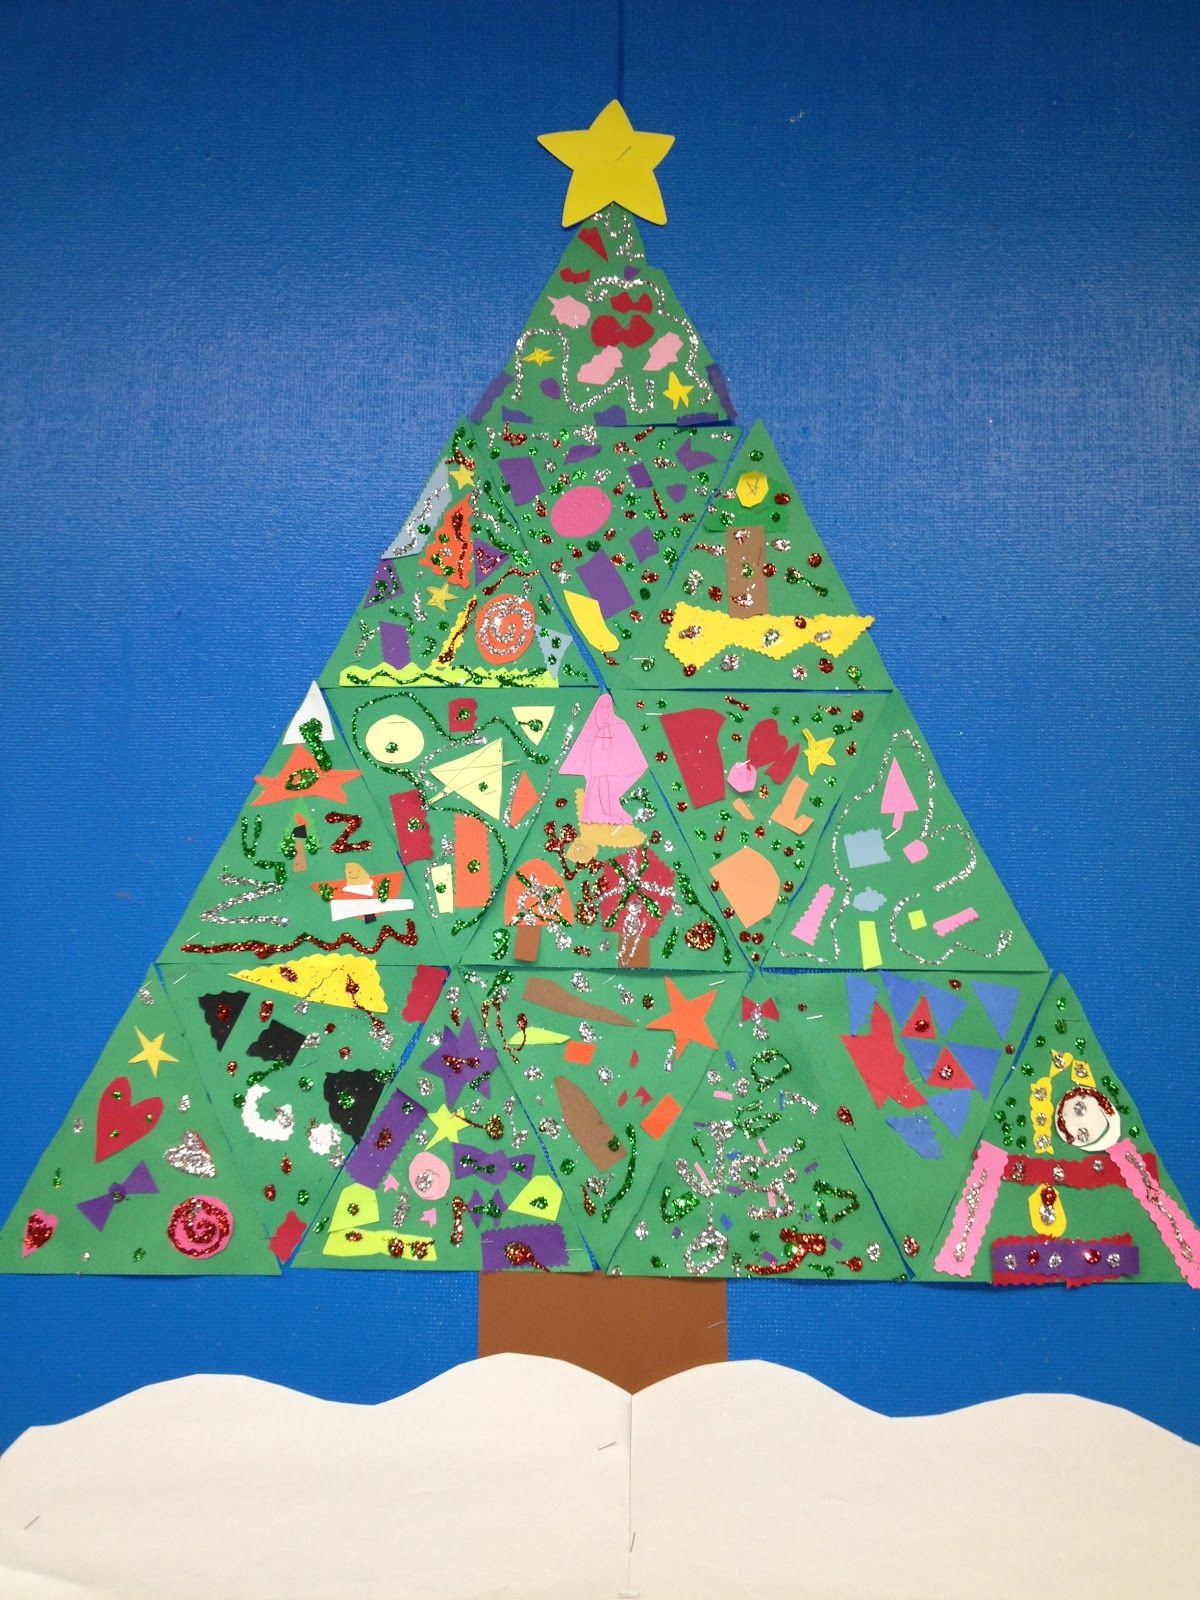 Each student gets a triangle to decorate